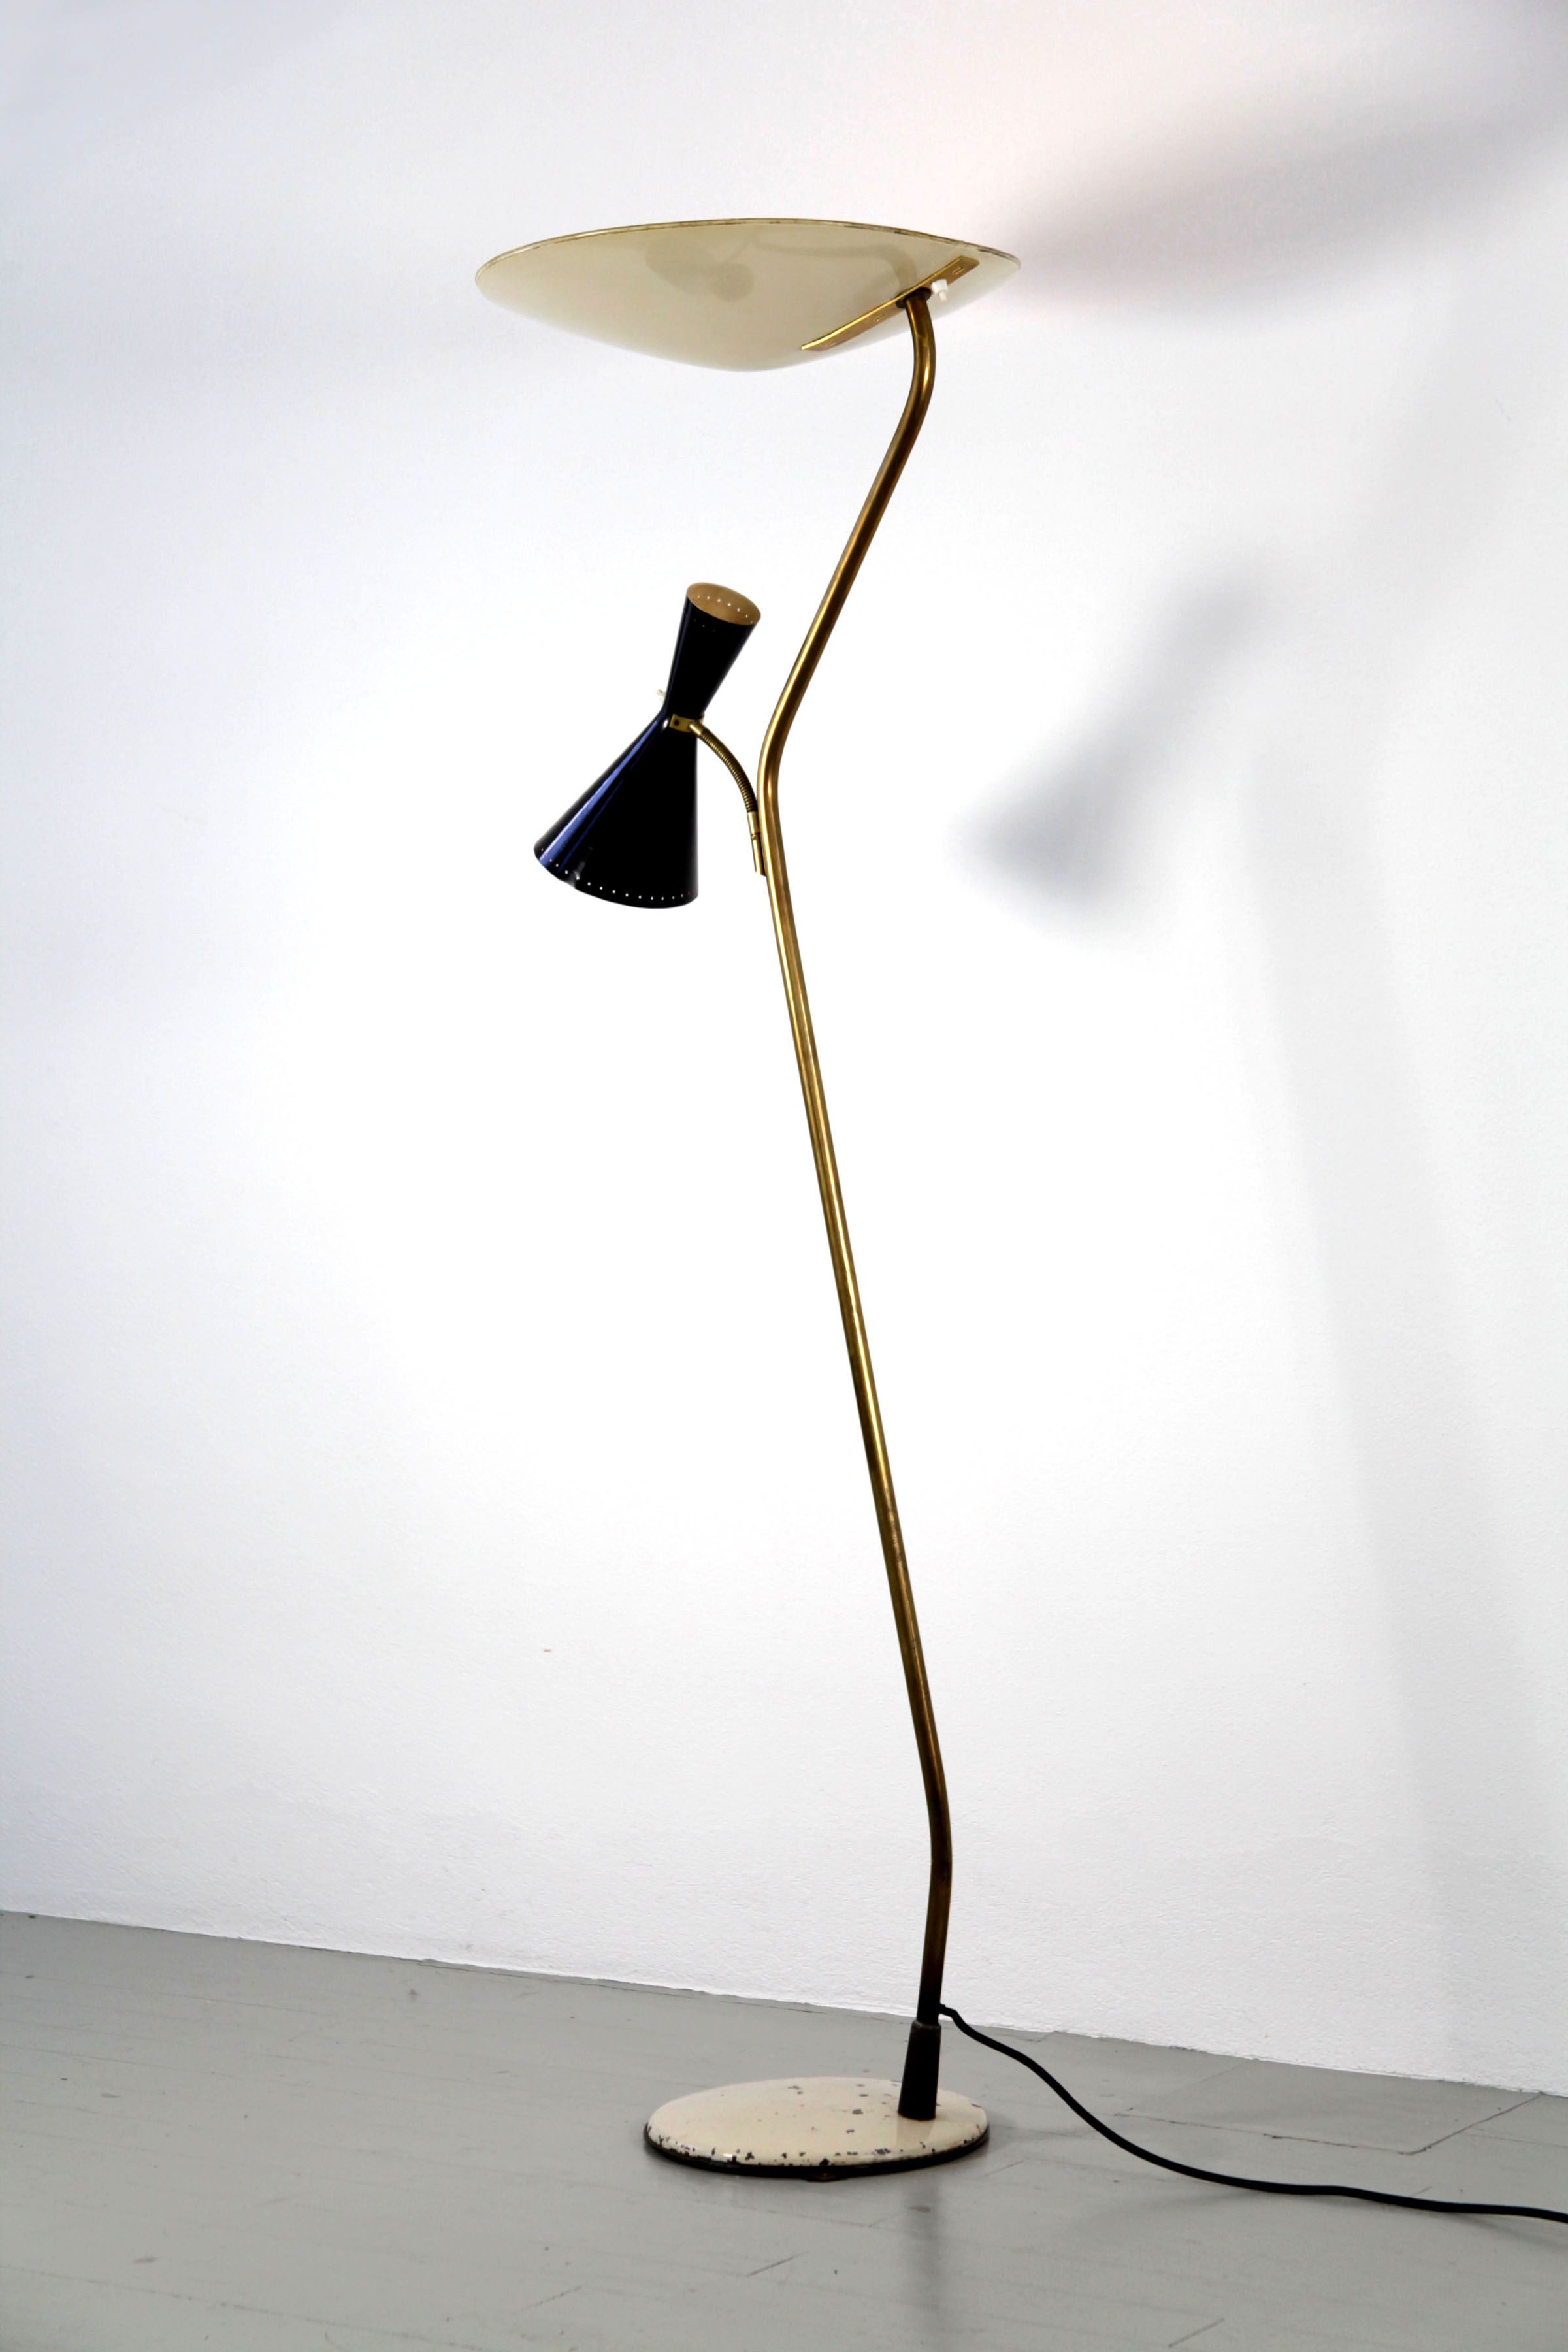 Eberth Zurich Switzerland 1950 S Wohn Design Lampen Lampe